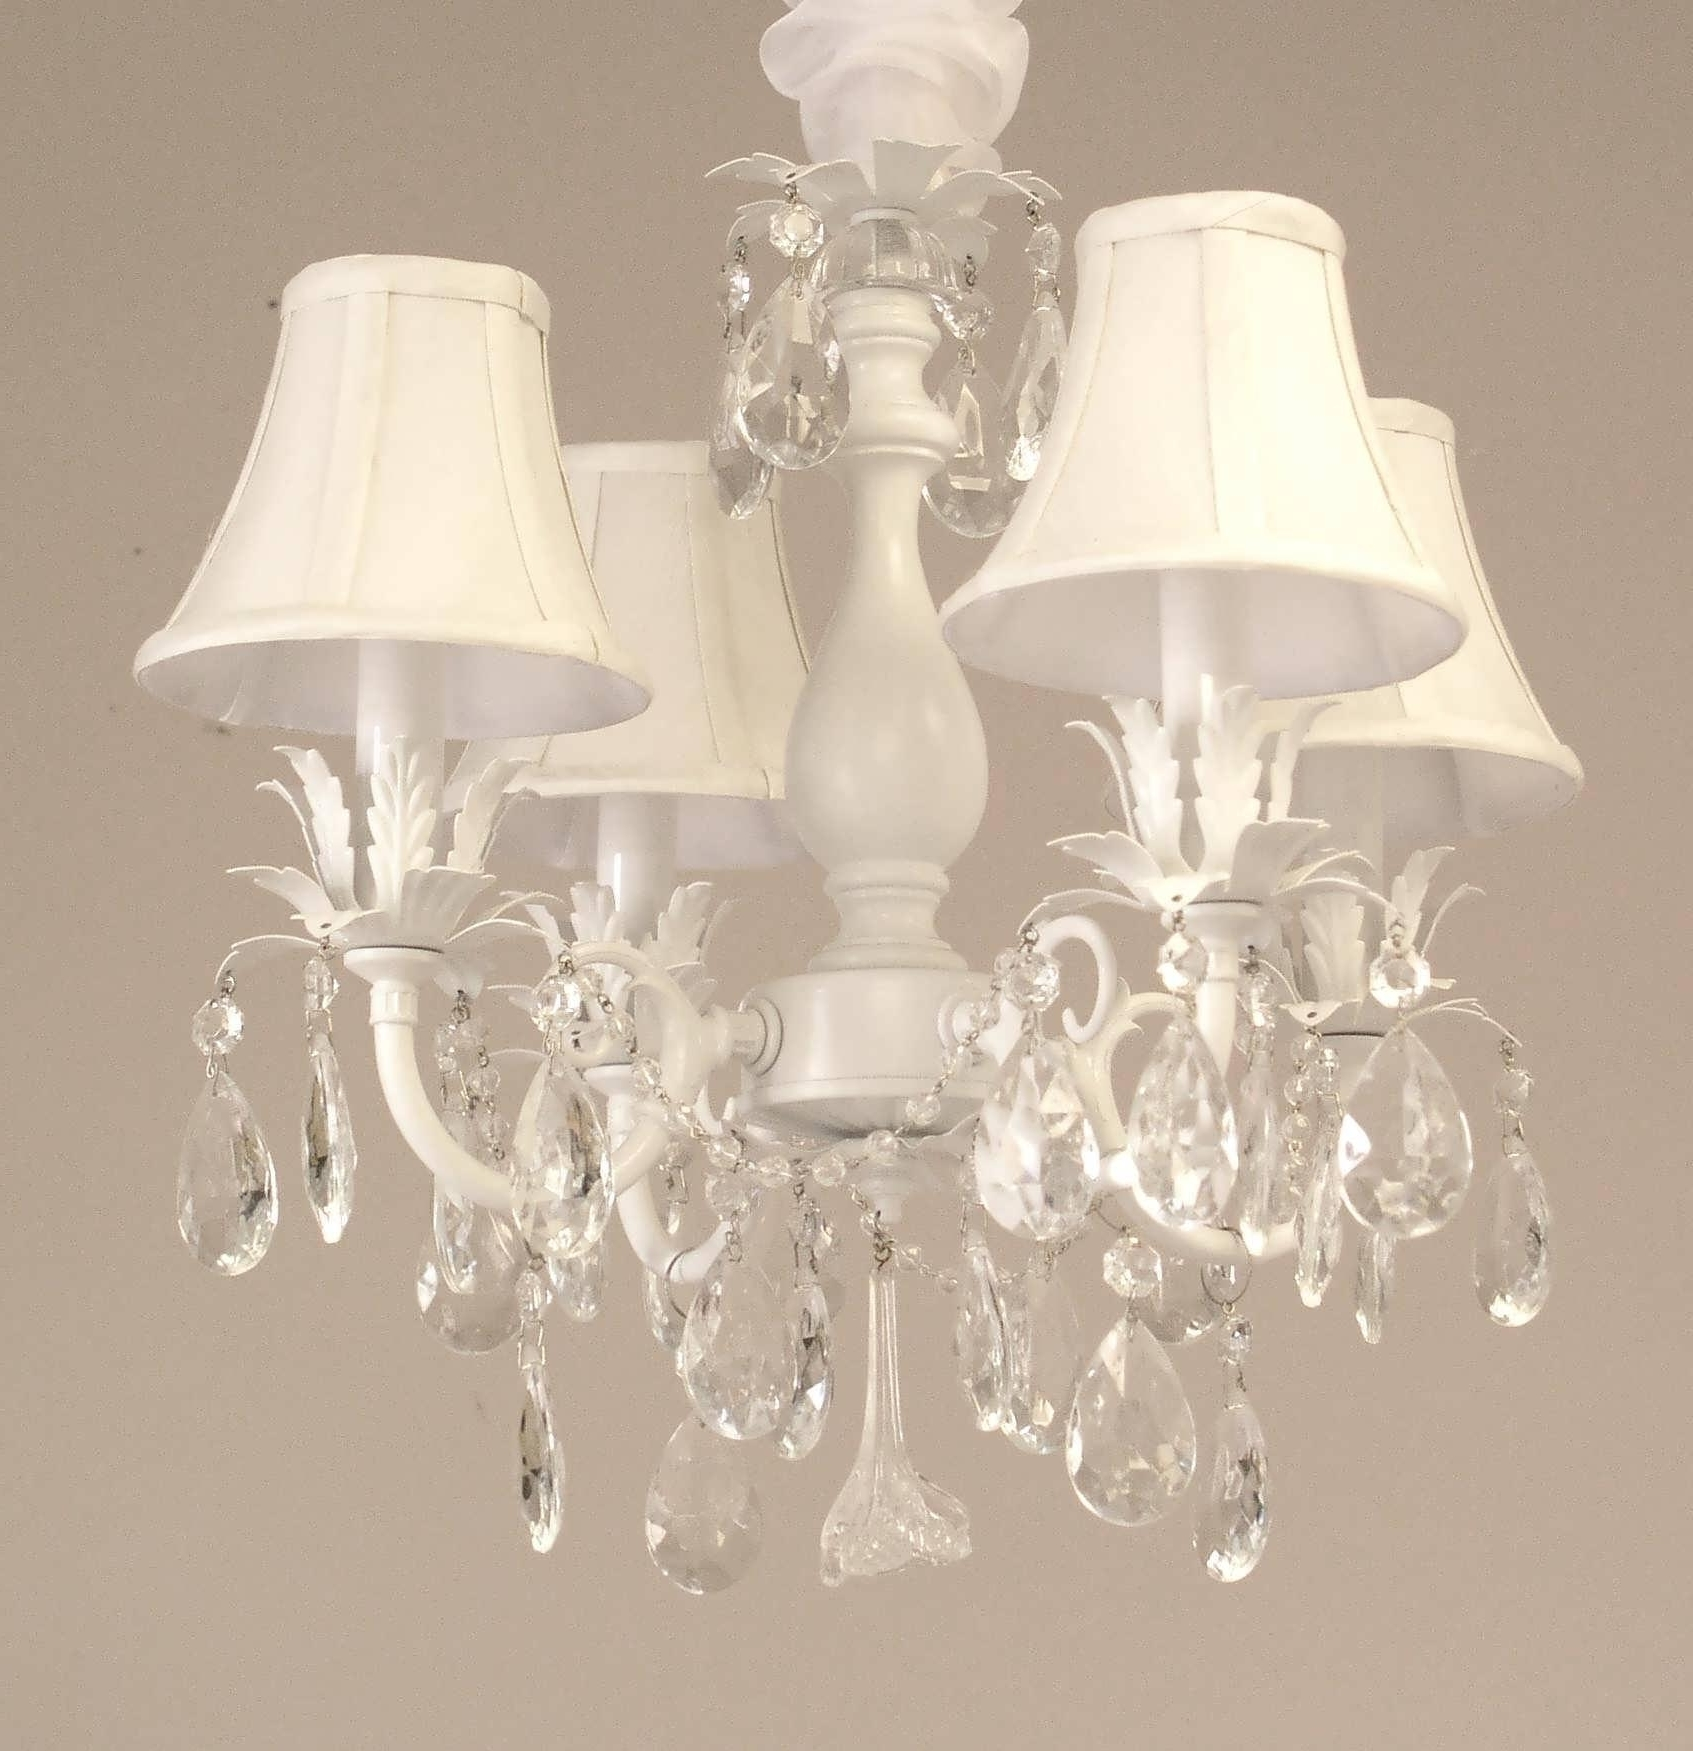 Newest Shabby Chic Chandeliers Inside Chandeliers : Shabby Chic Chandeliers Luxury Chandeliers Design (View 11 of 20)